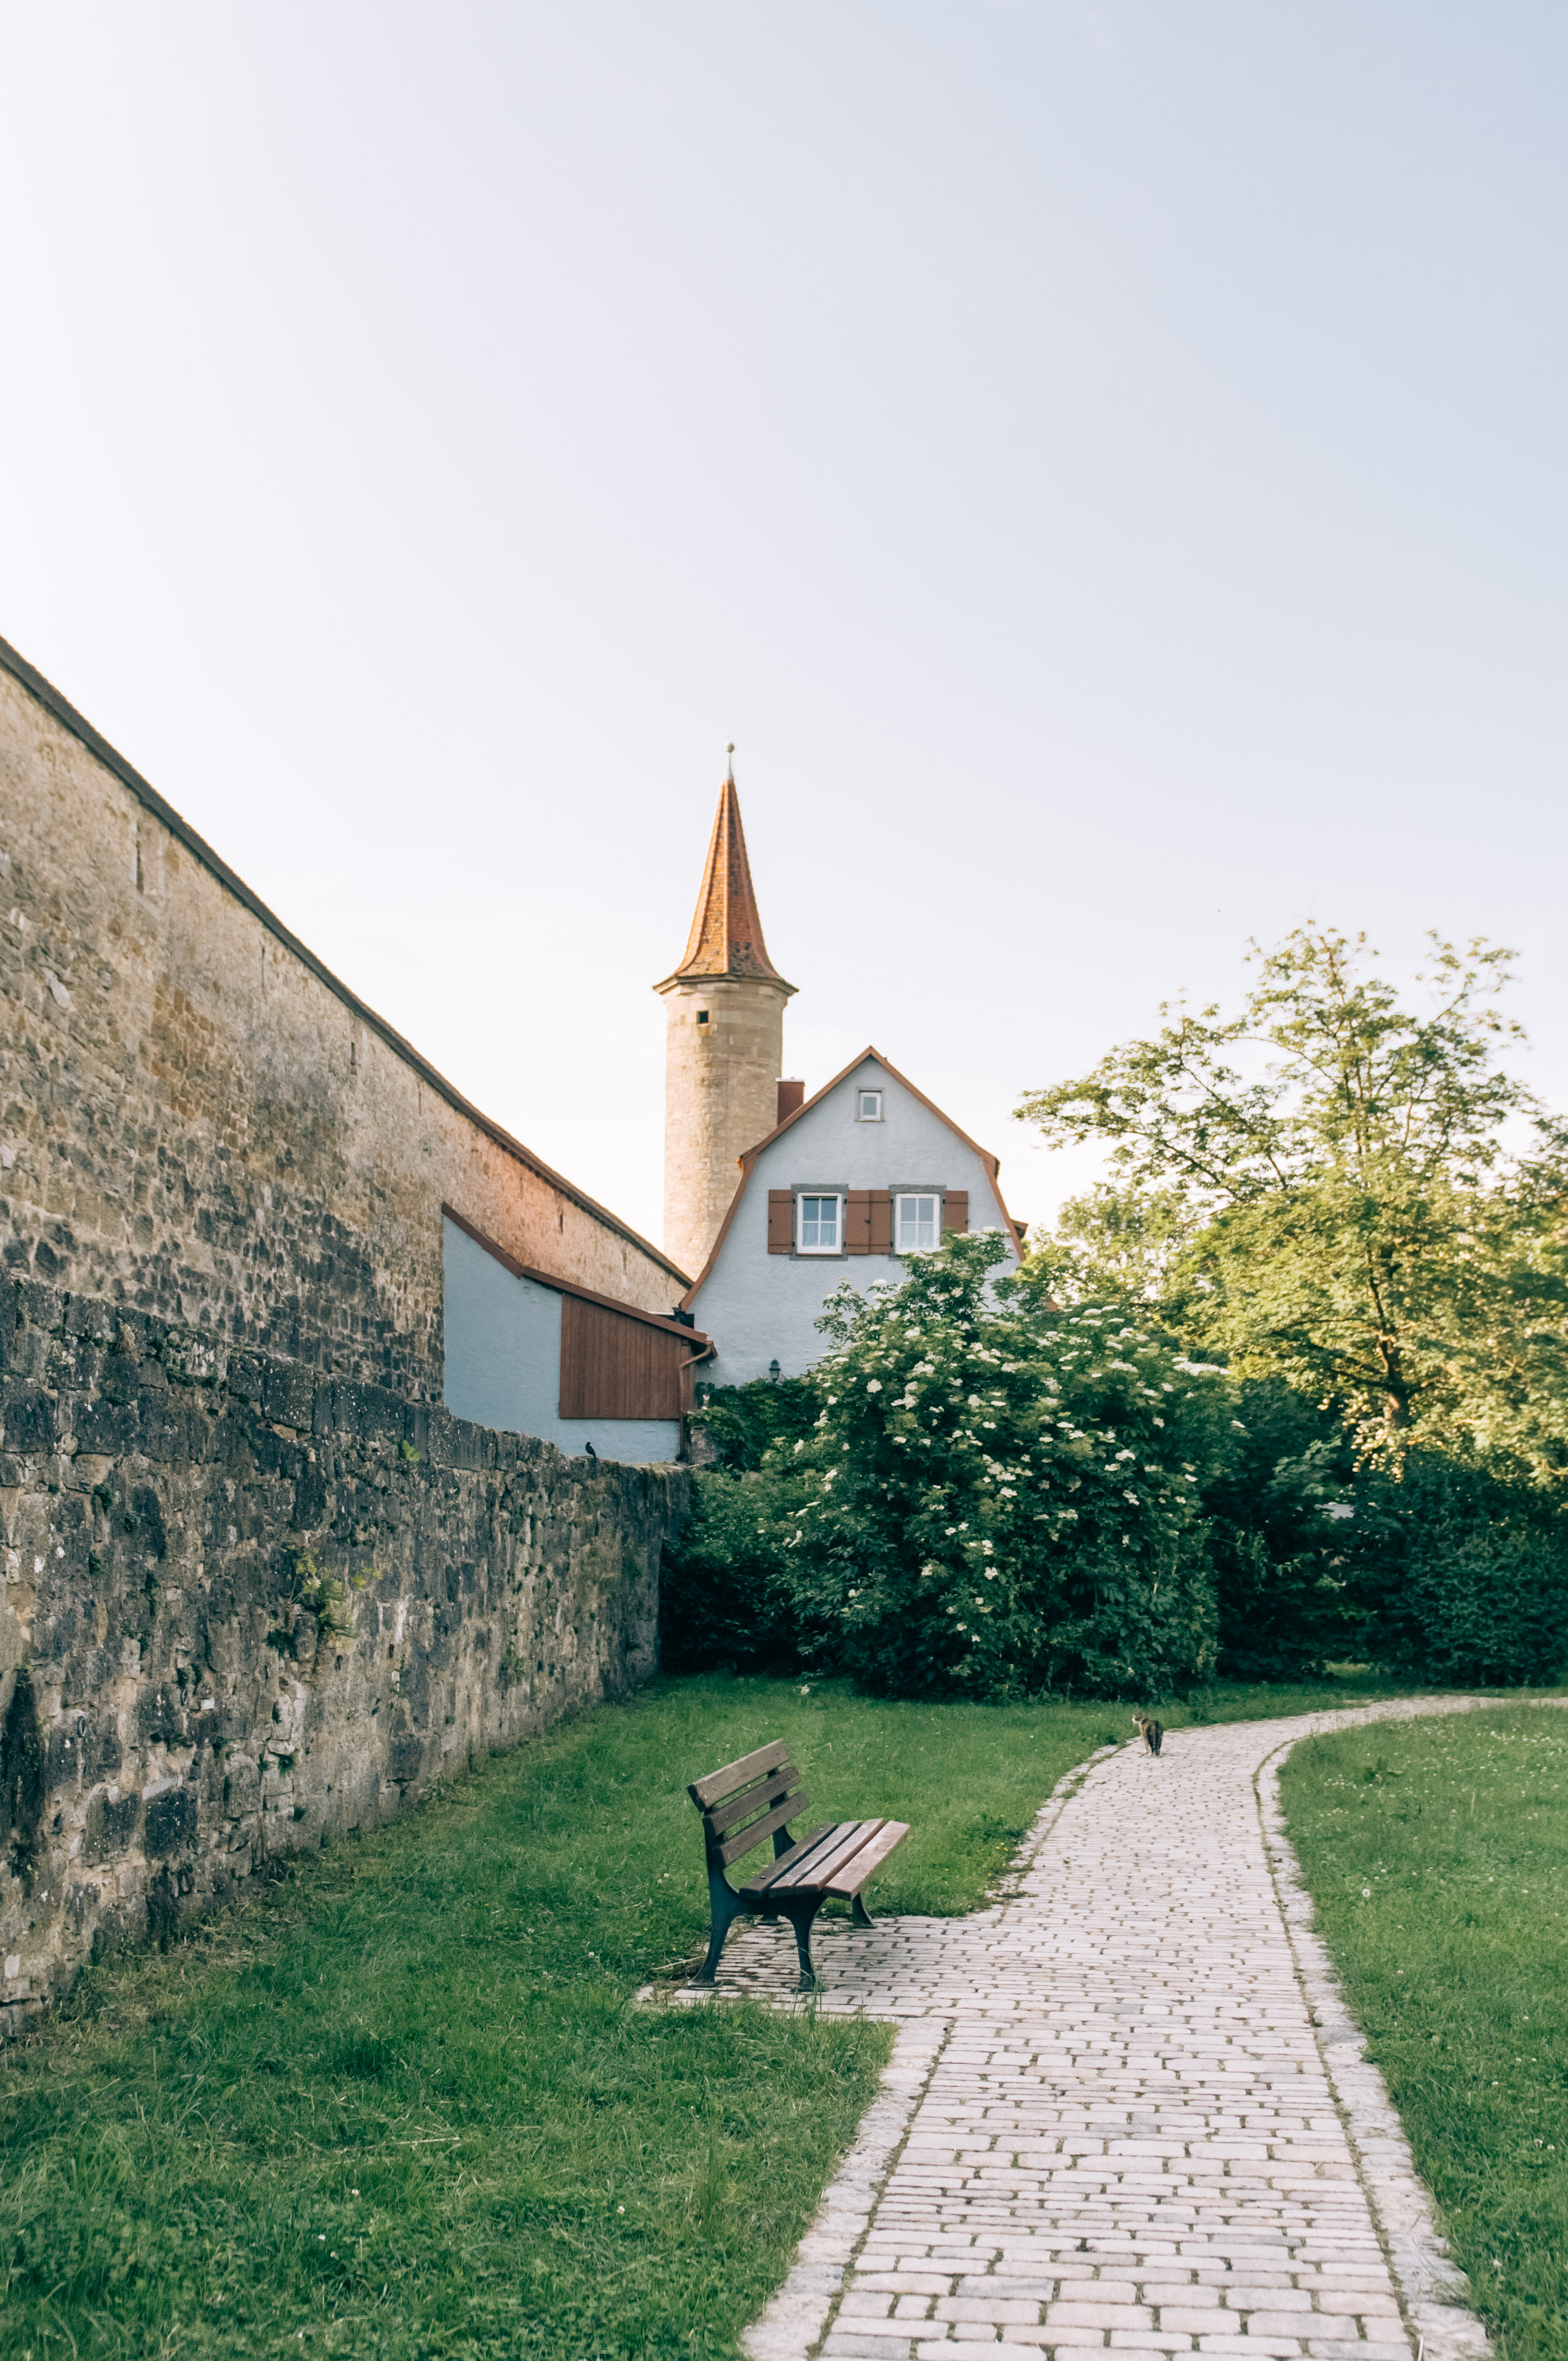 rothenburg-xavier-manhing-9.jpg